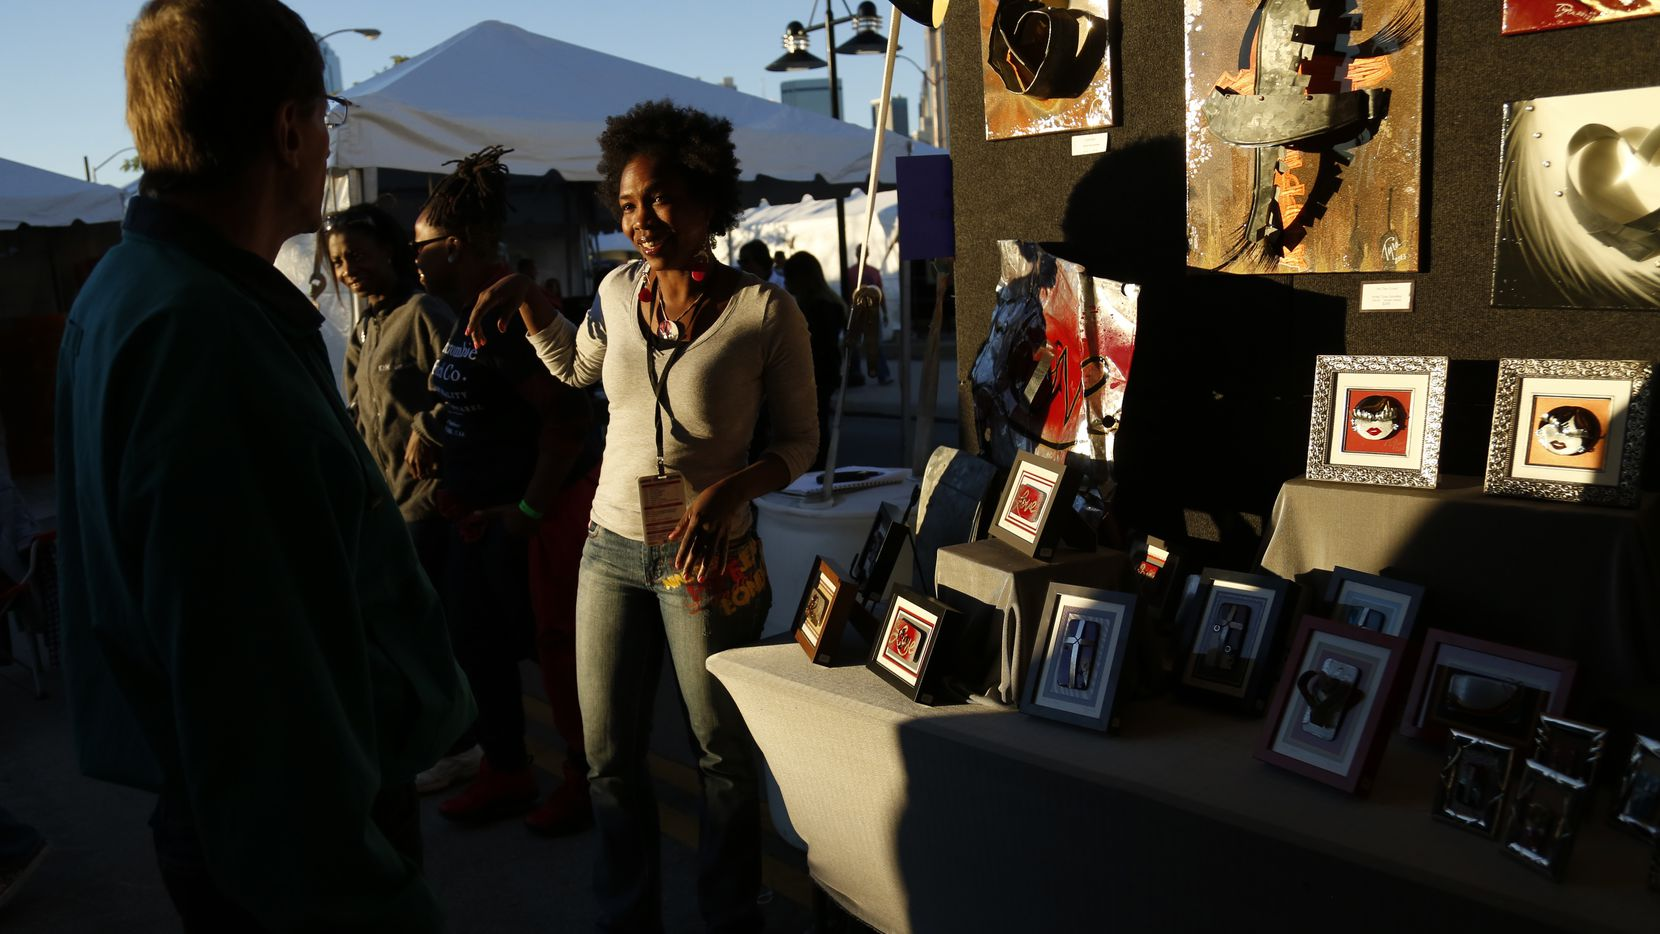 Artist Tyra Goodley, background center, talks with visitors at her booth during the Lamar Street Festival in Dallas, TX on October 19, 2013.